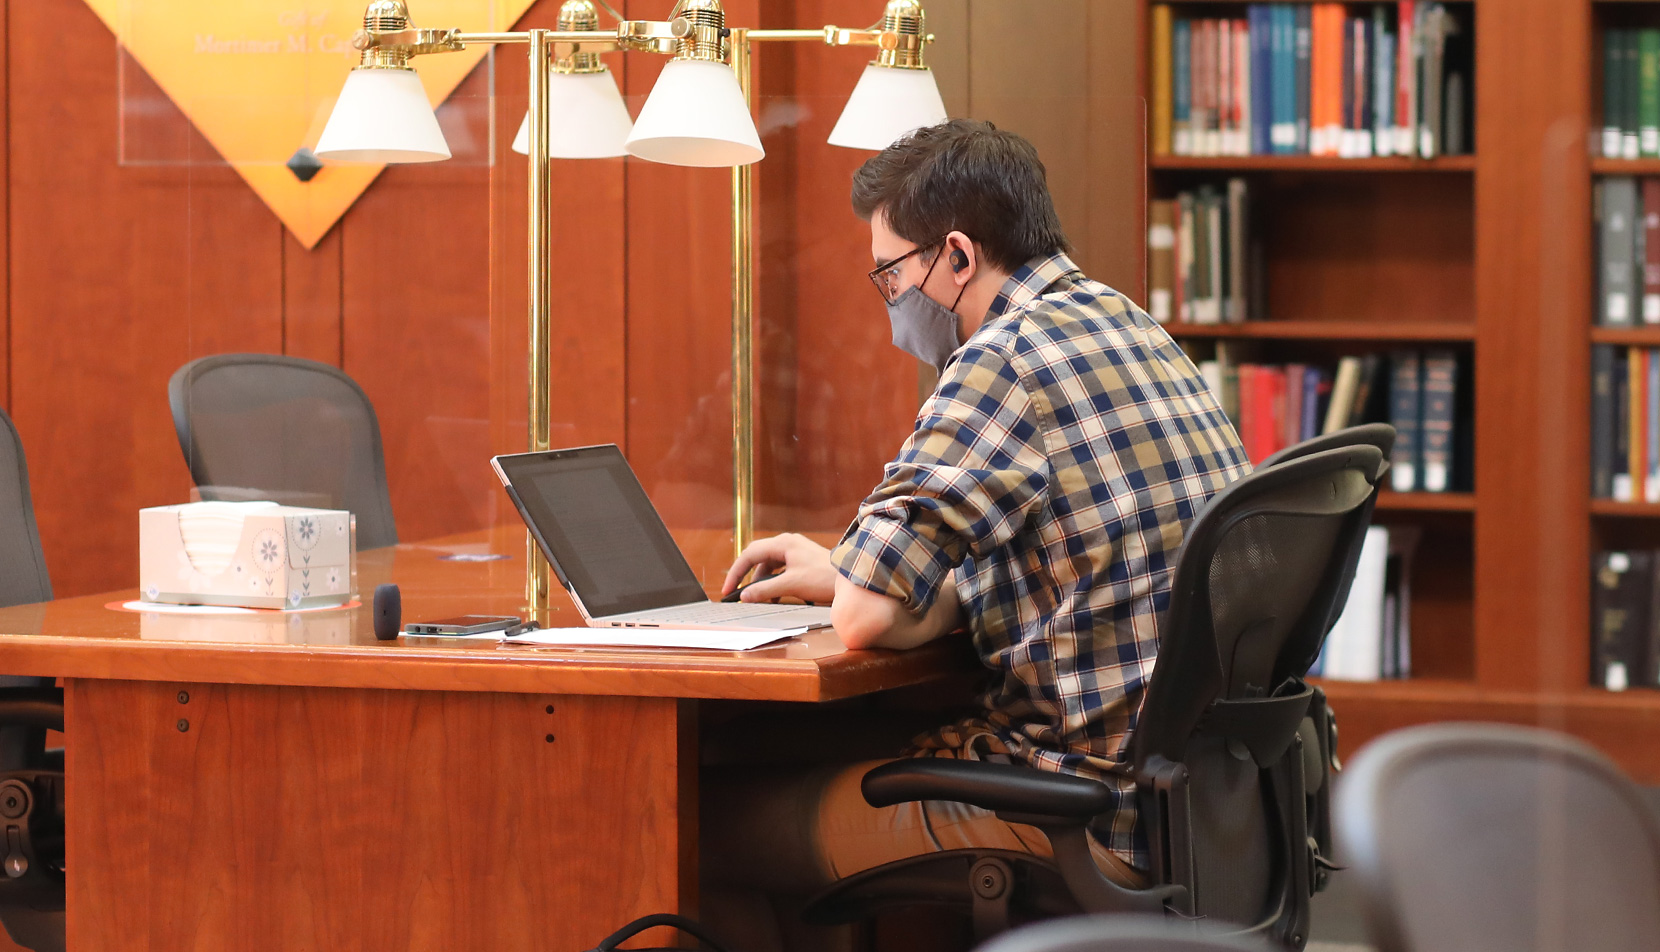 Law student studying in the library